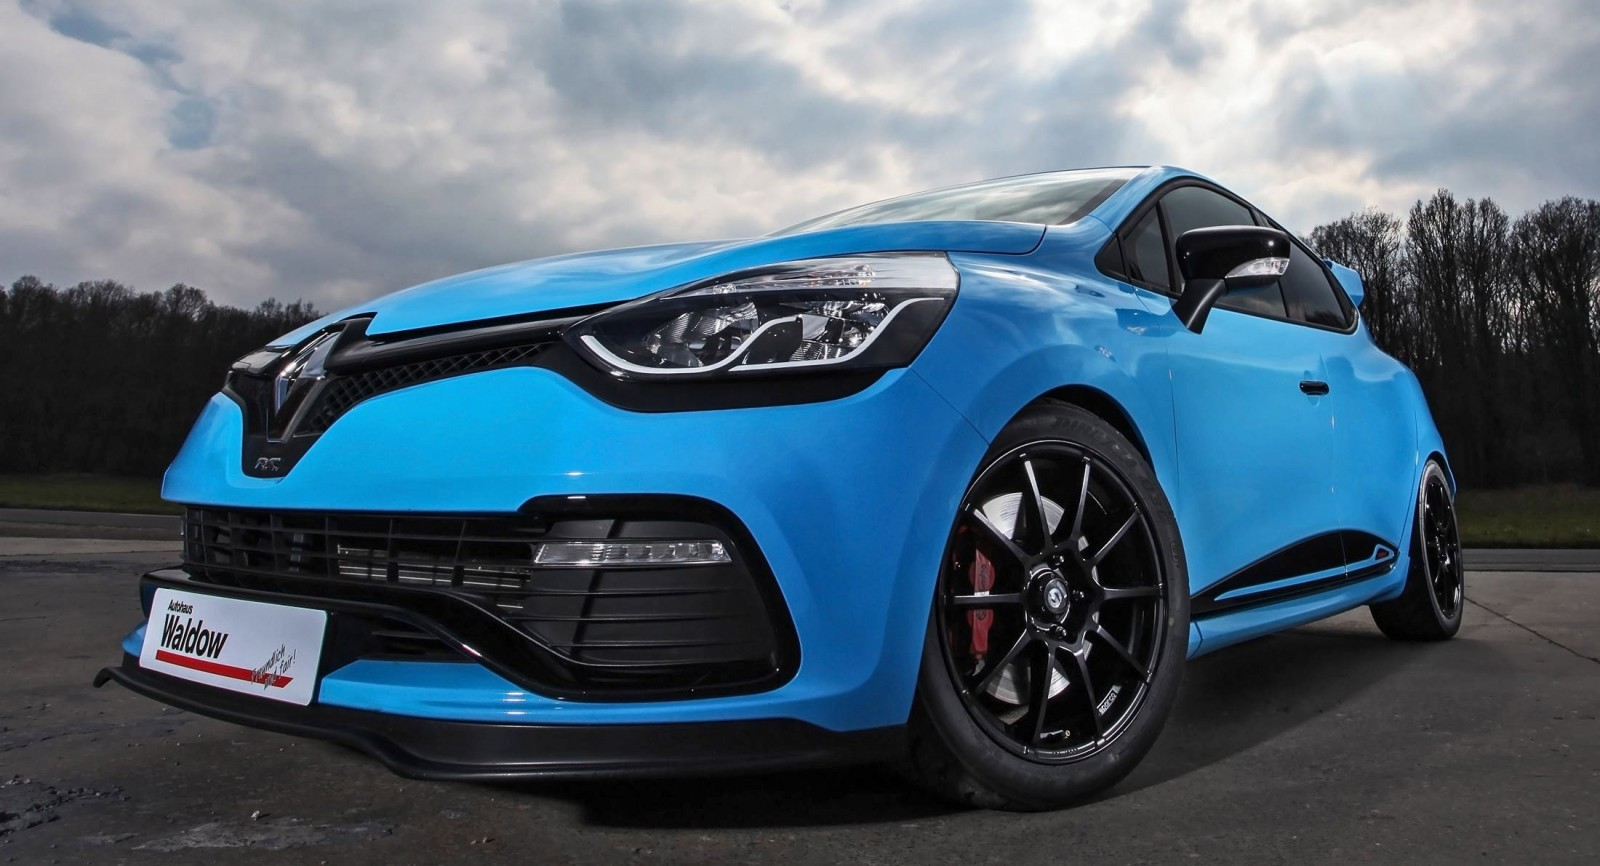 2016 renault clio by waldow performance smurfberry blue track special. Black Bedroom Furniture Sets. Home Design Ideas